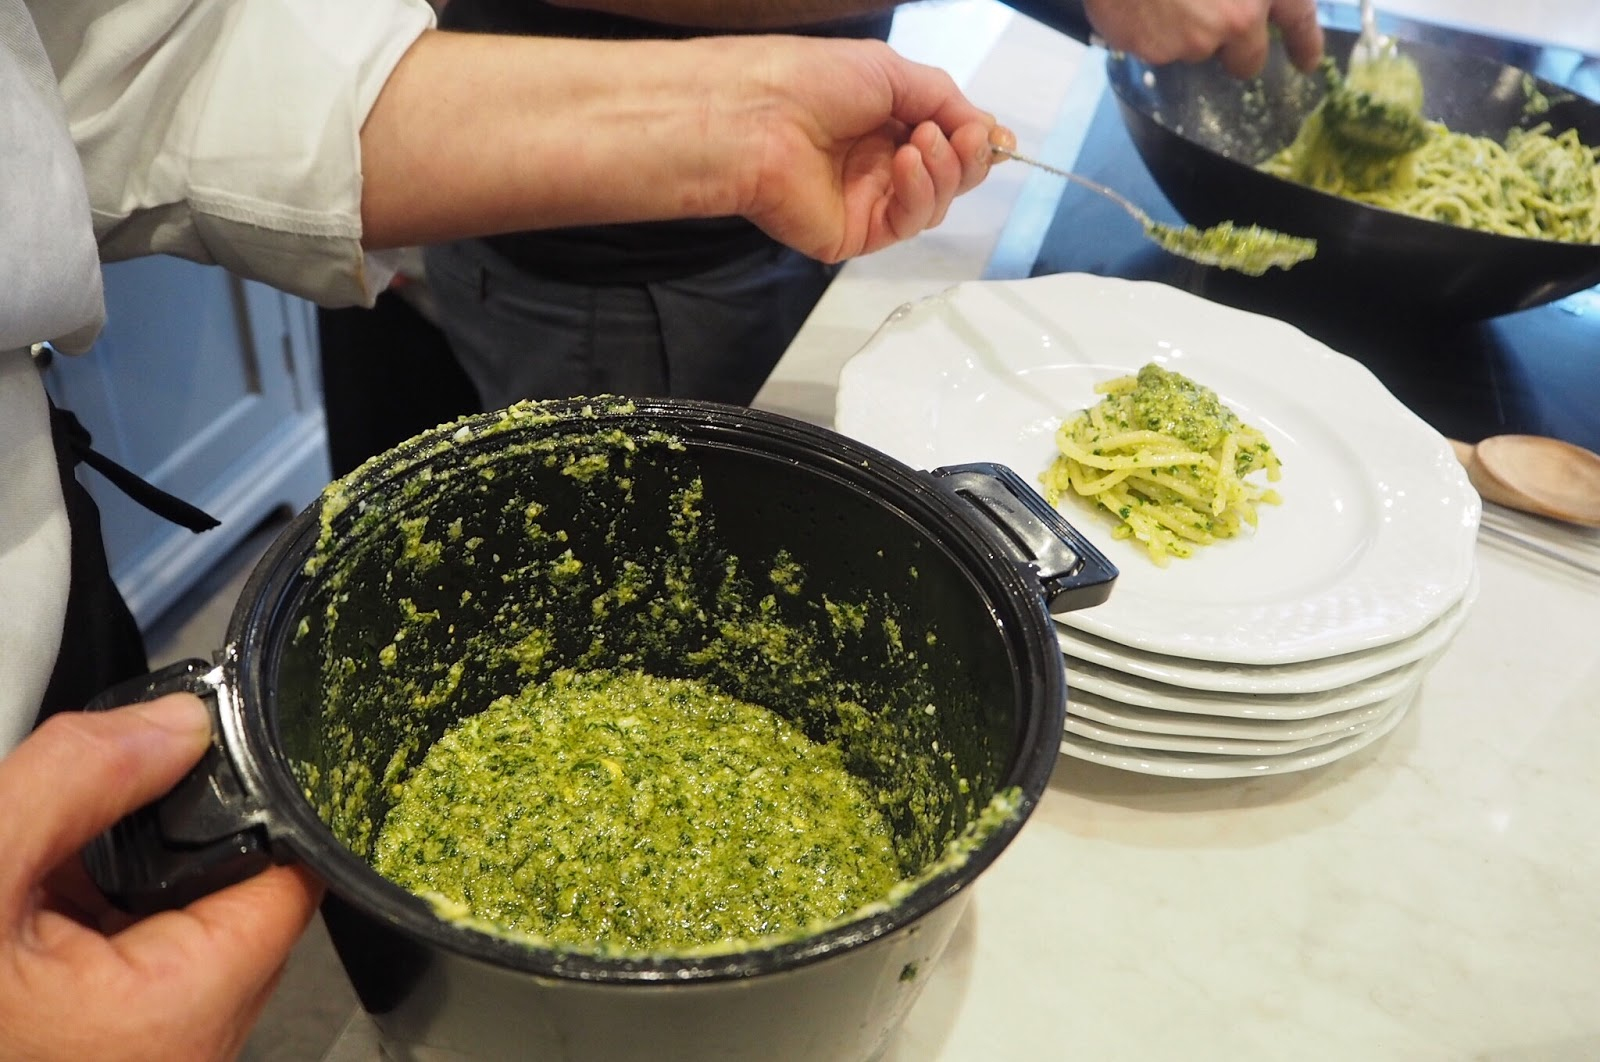 Homemade pesto with pici spaghetti